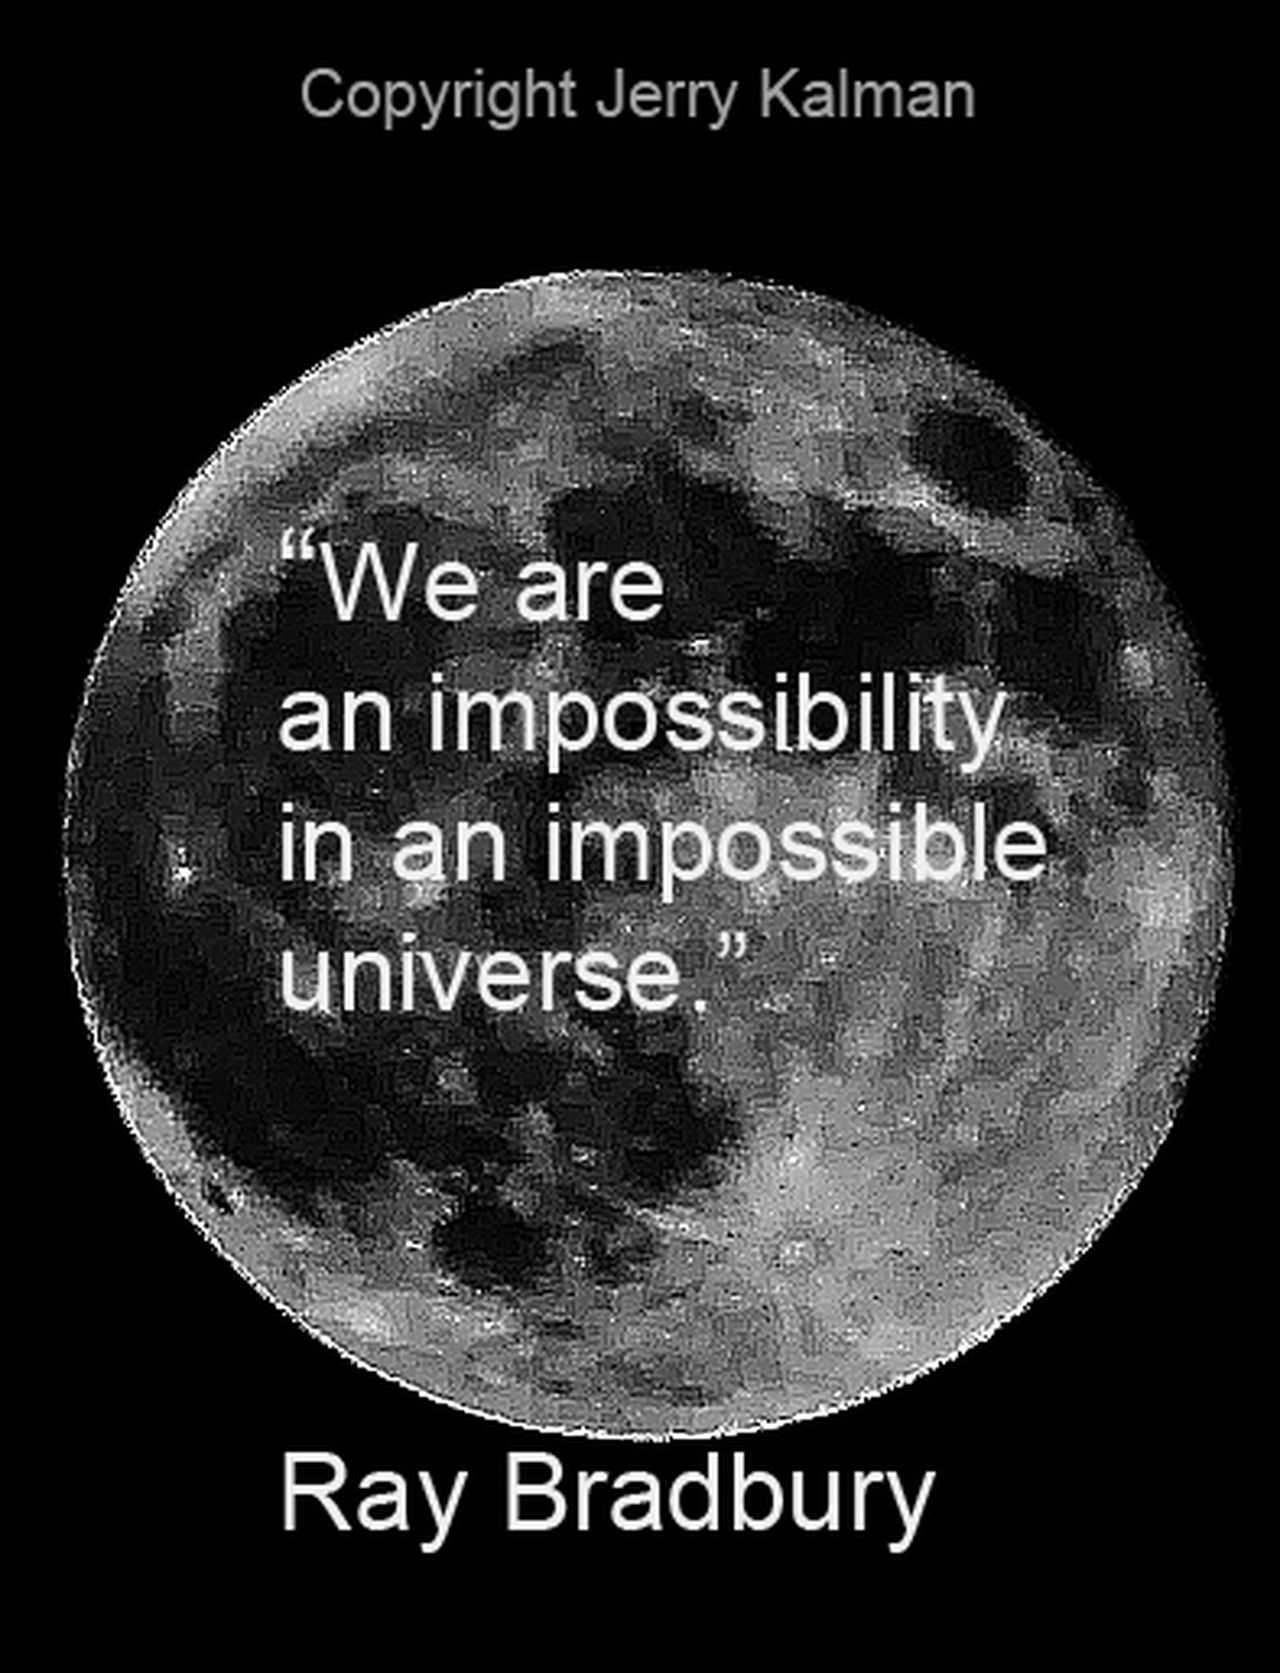 Ray Bradbury quote against a close-up of the moon Black Background Close-up Communication Moon Night Ray Bradbury Quote Text University